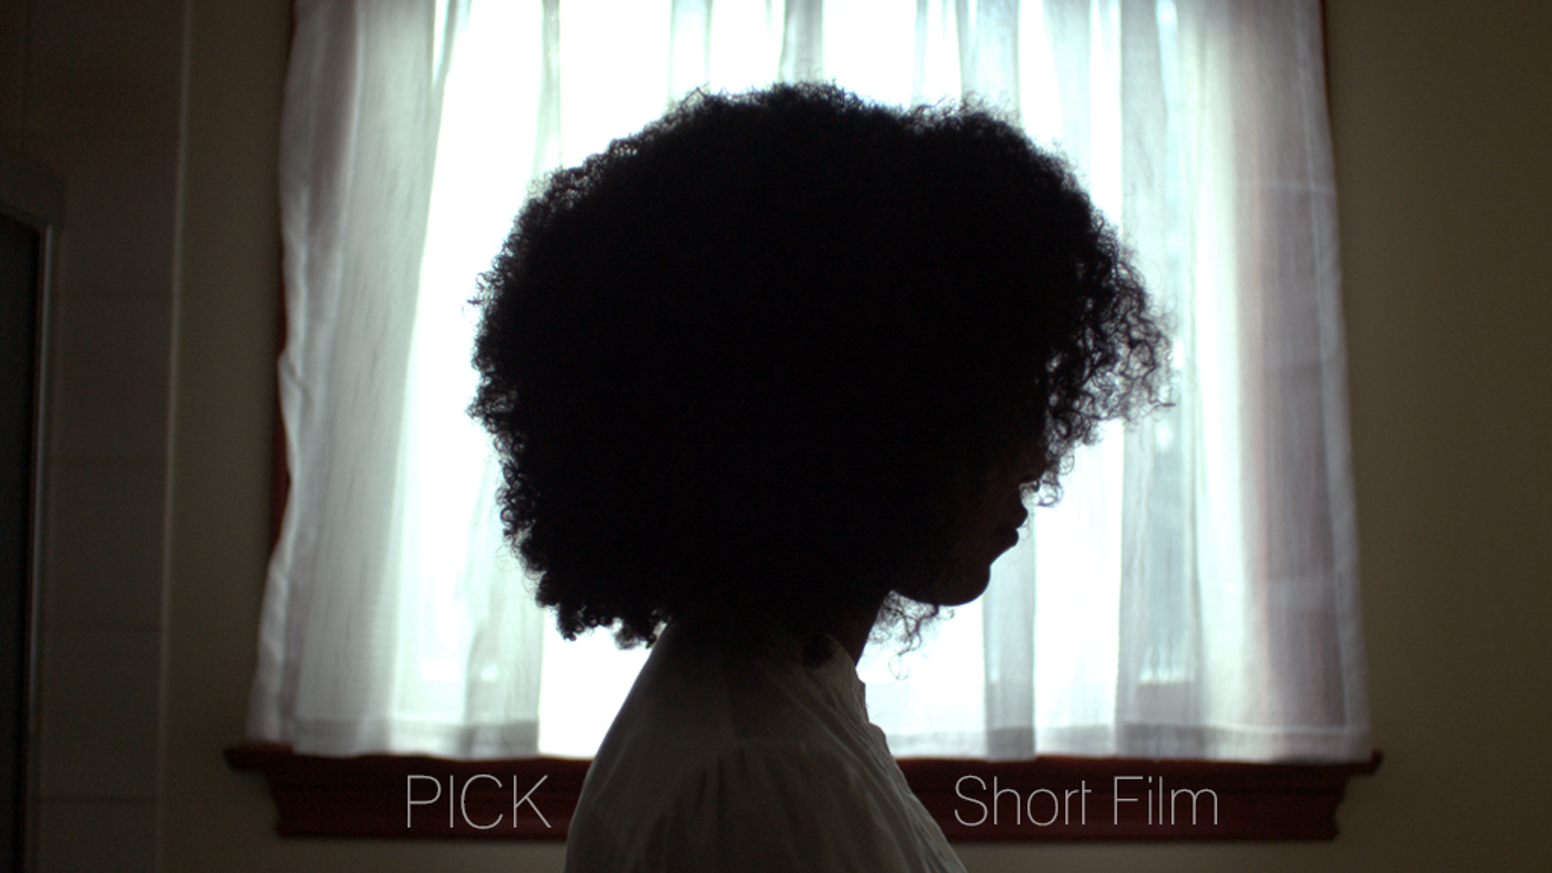 A short drama about a girl who wears her afro to school and must deal with the unexpected consequences.